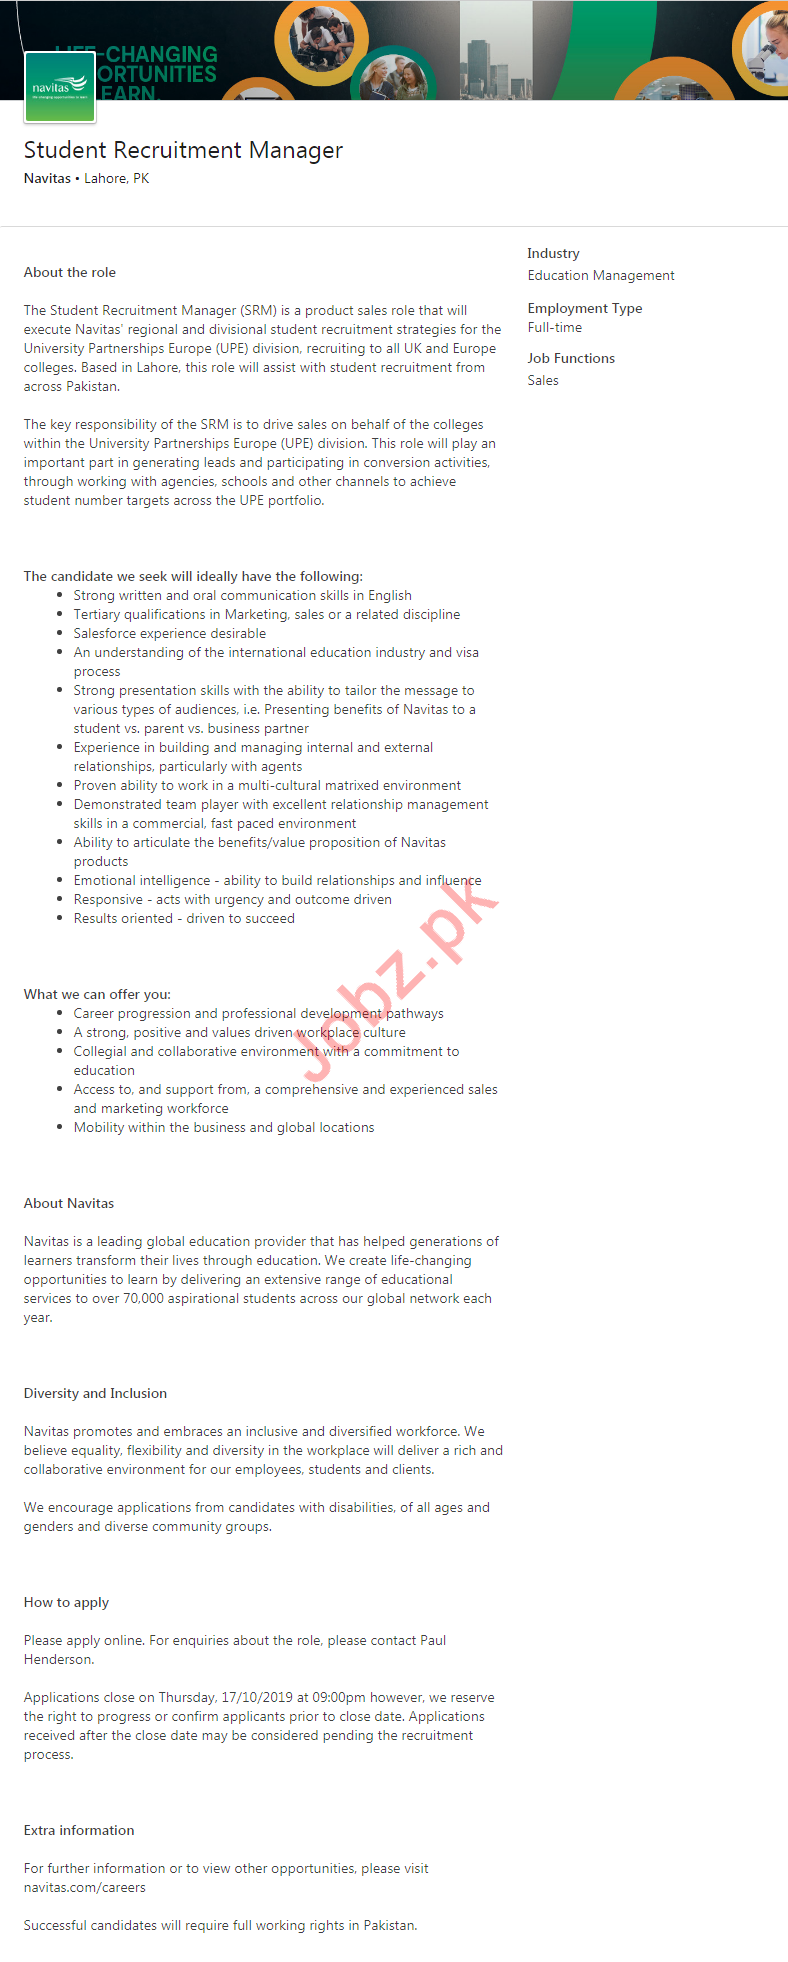 Navitas Company Job For Student Recruitment Manager